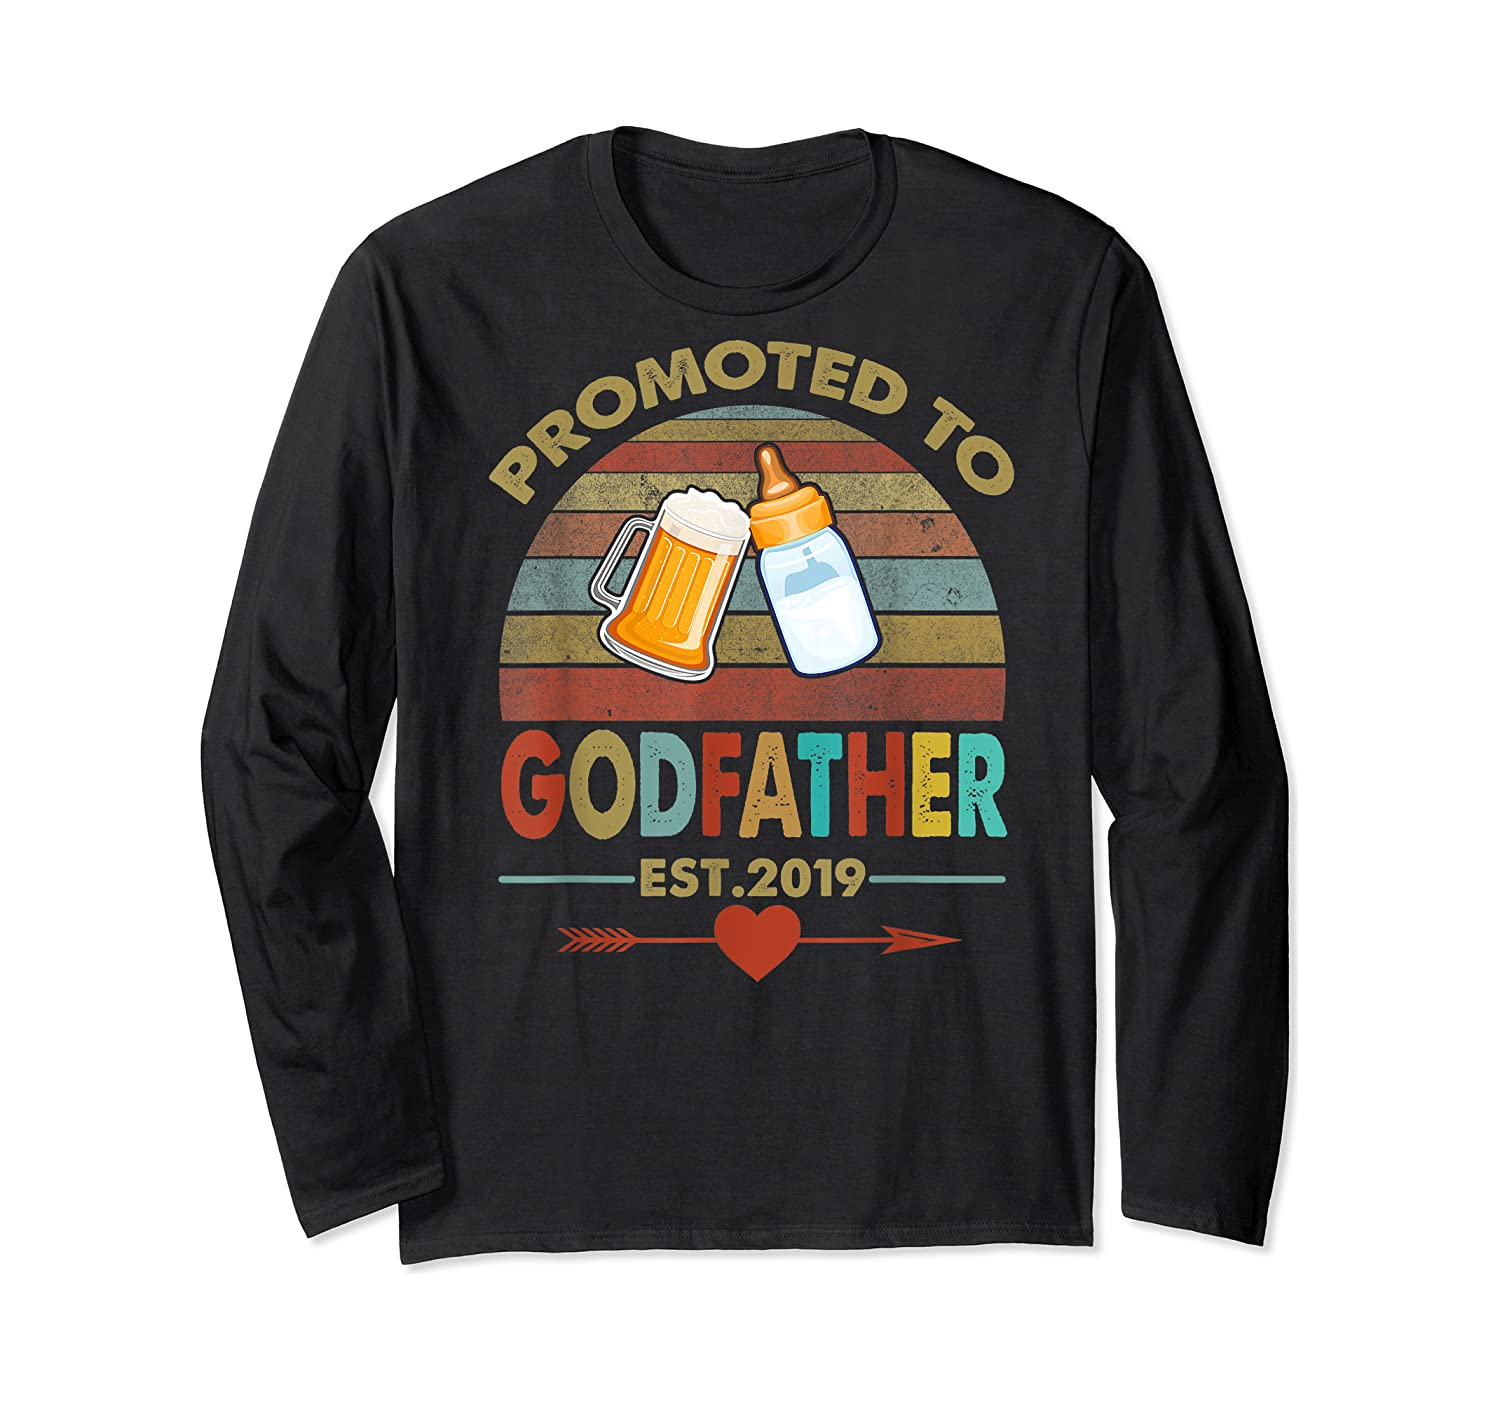 Promoted To Godfather Est 2019 Vintage Arrow Shirts Long Sleeve T-shirt